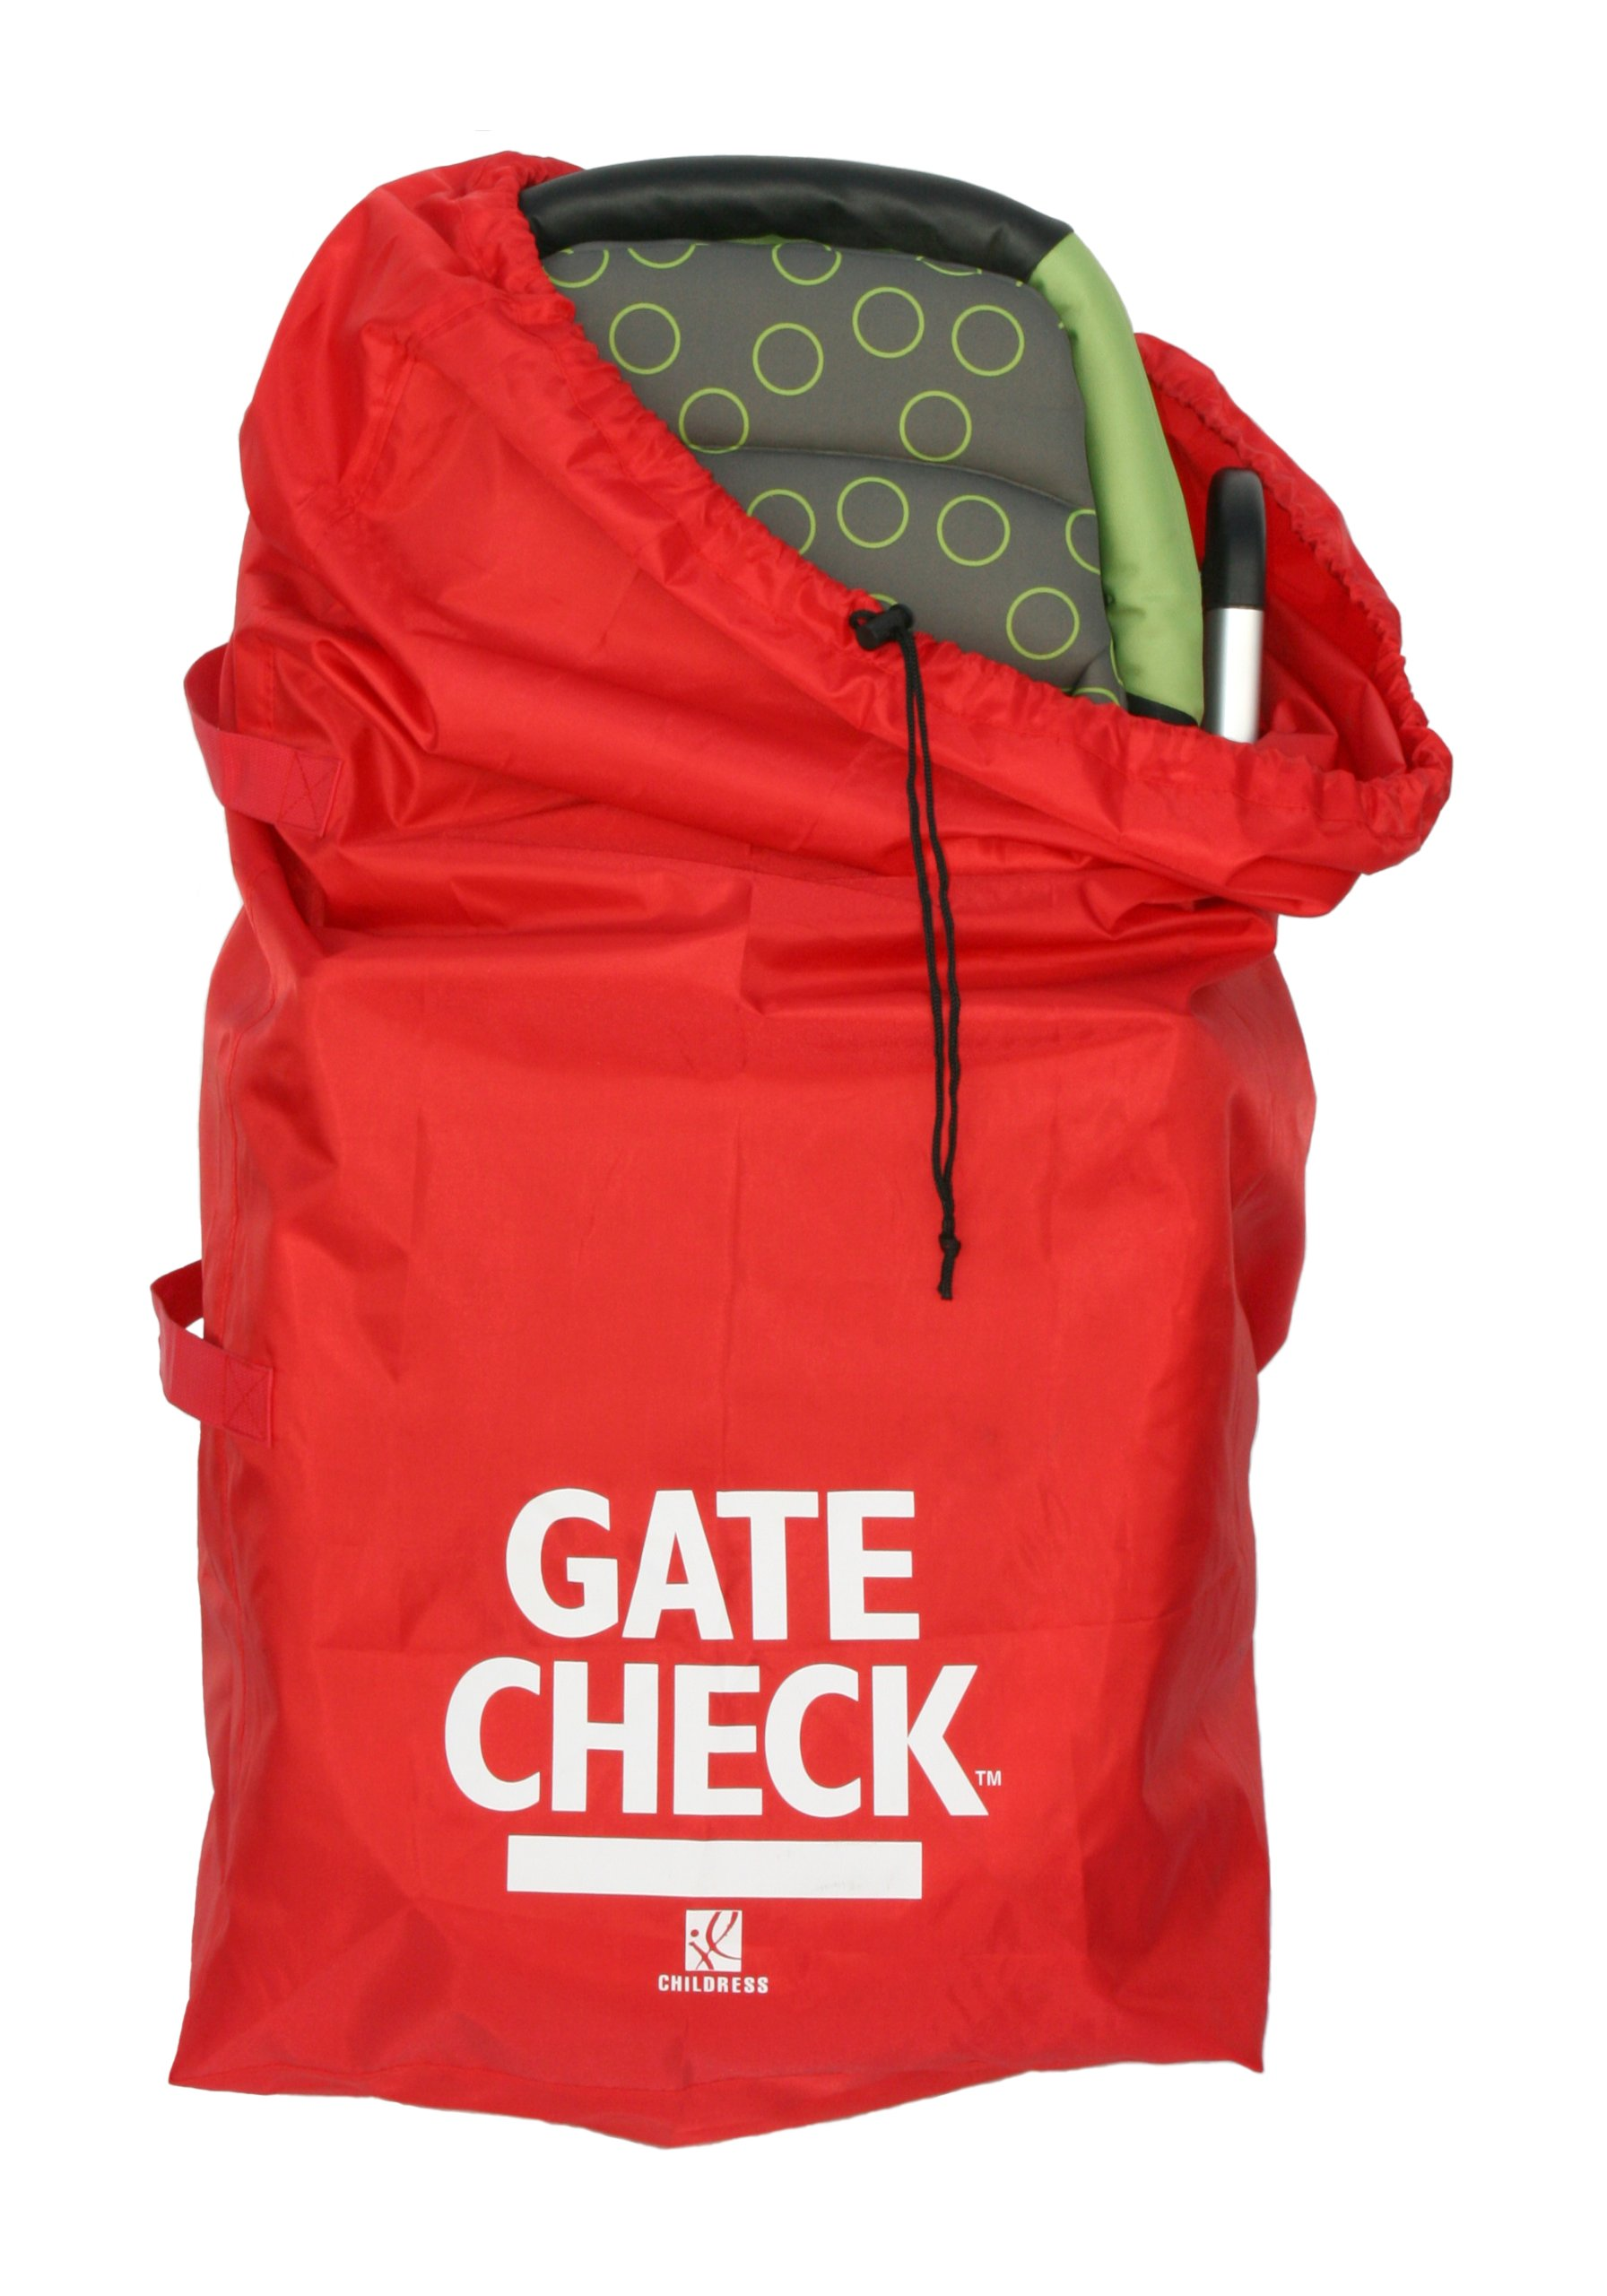 J.L. Childress Gate Check Bag For Standard and Double Strollers, Red by J.L. Childress (Image #2)